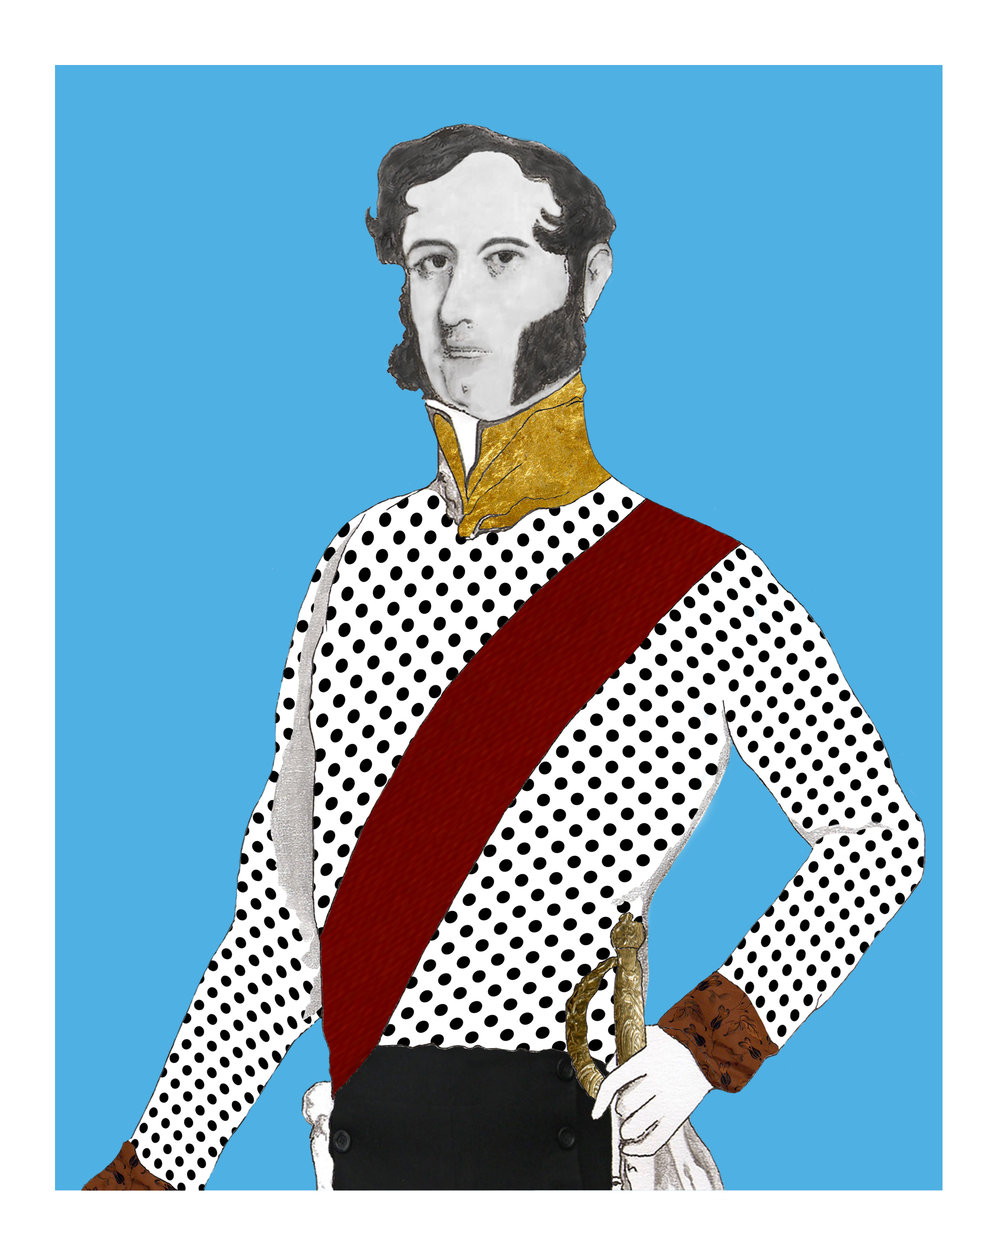 The Duke on Blue Giclée print 10 in x 8 in Edition of 25